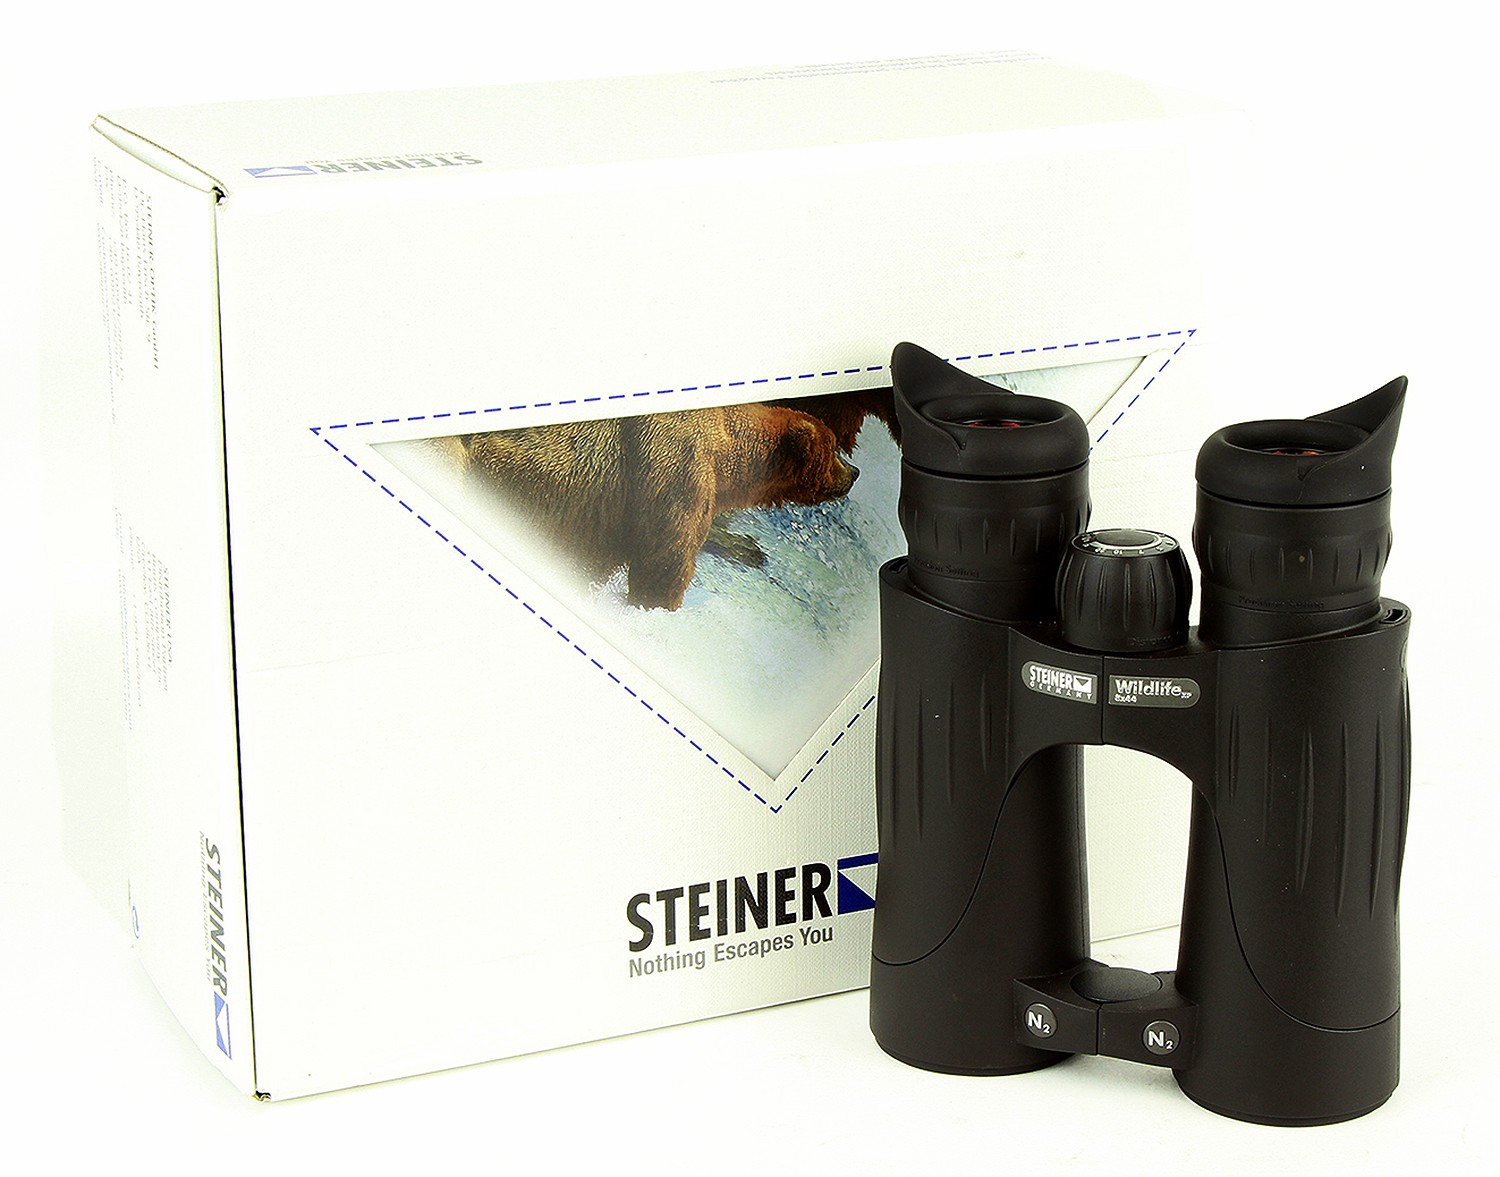 Steiner 8x44 Wildlife XP Binocular DEMO-B